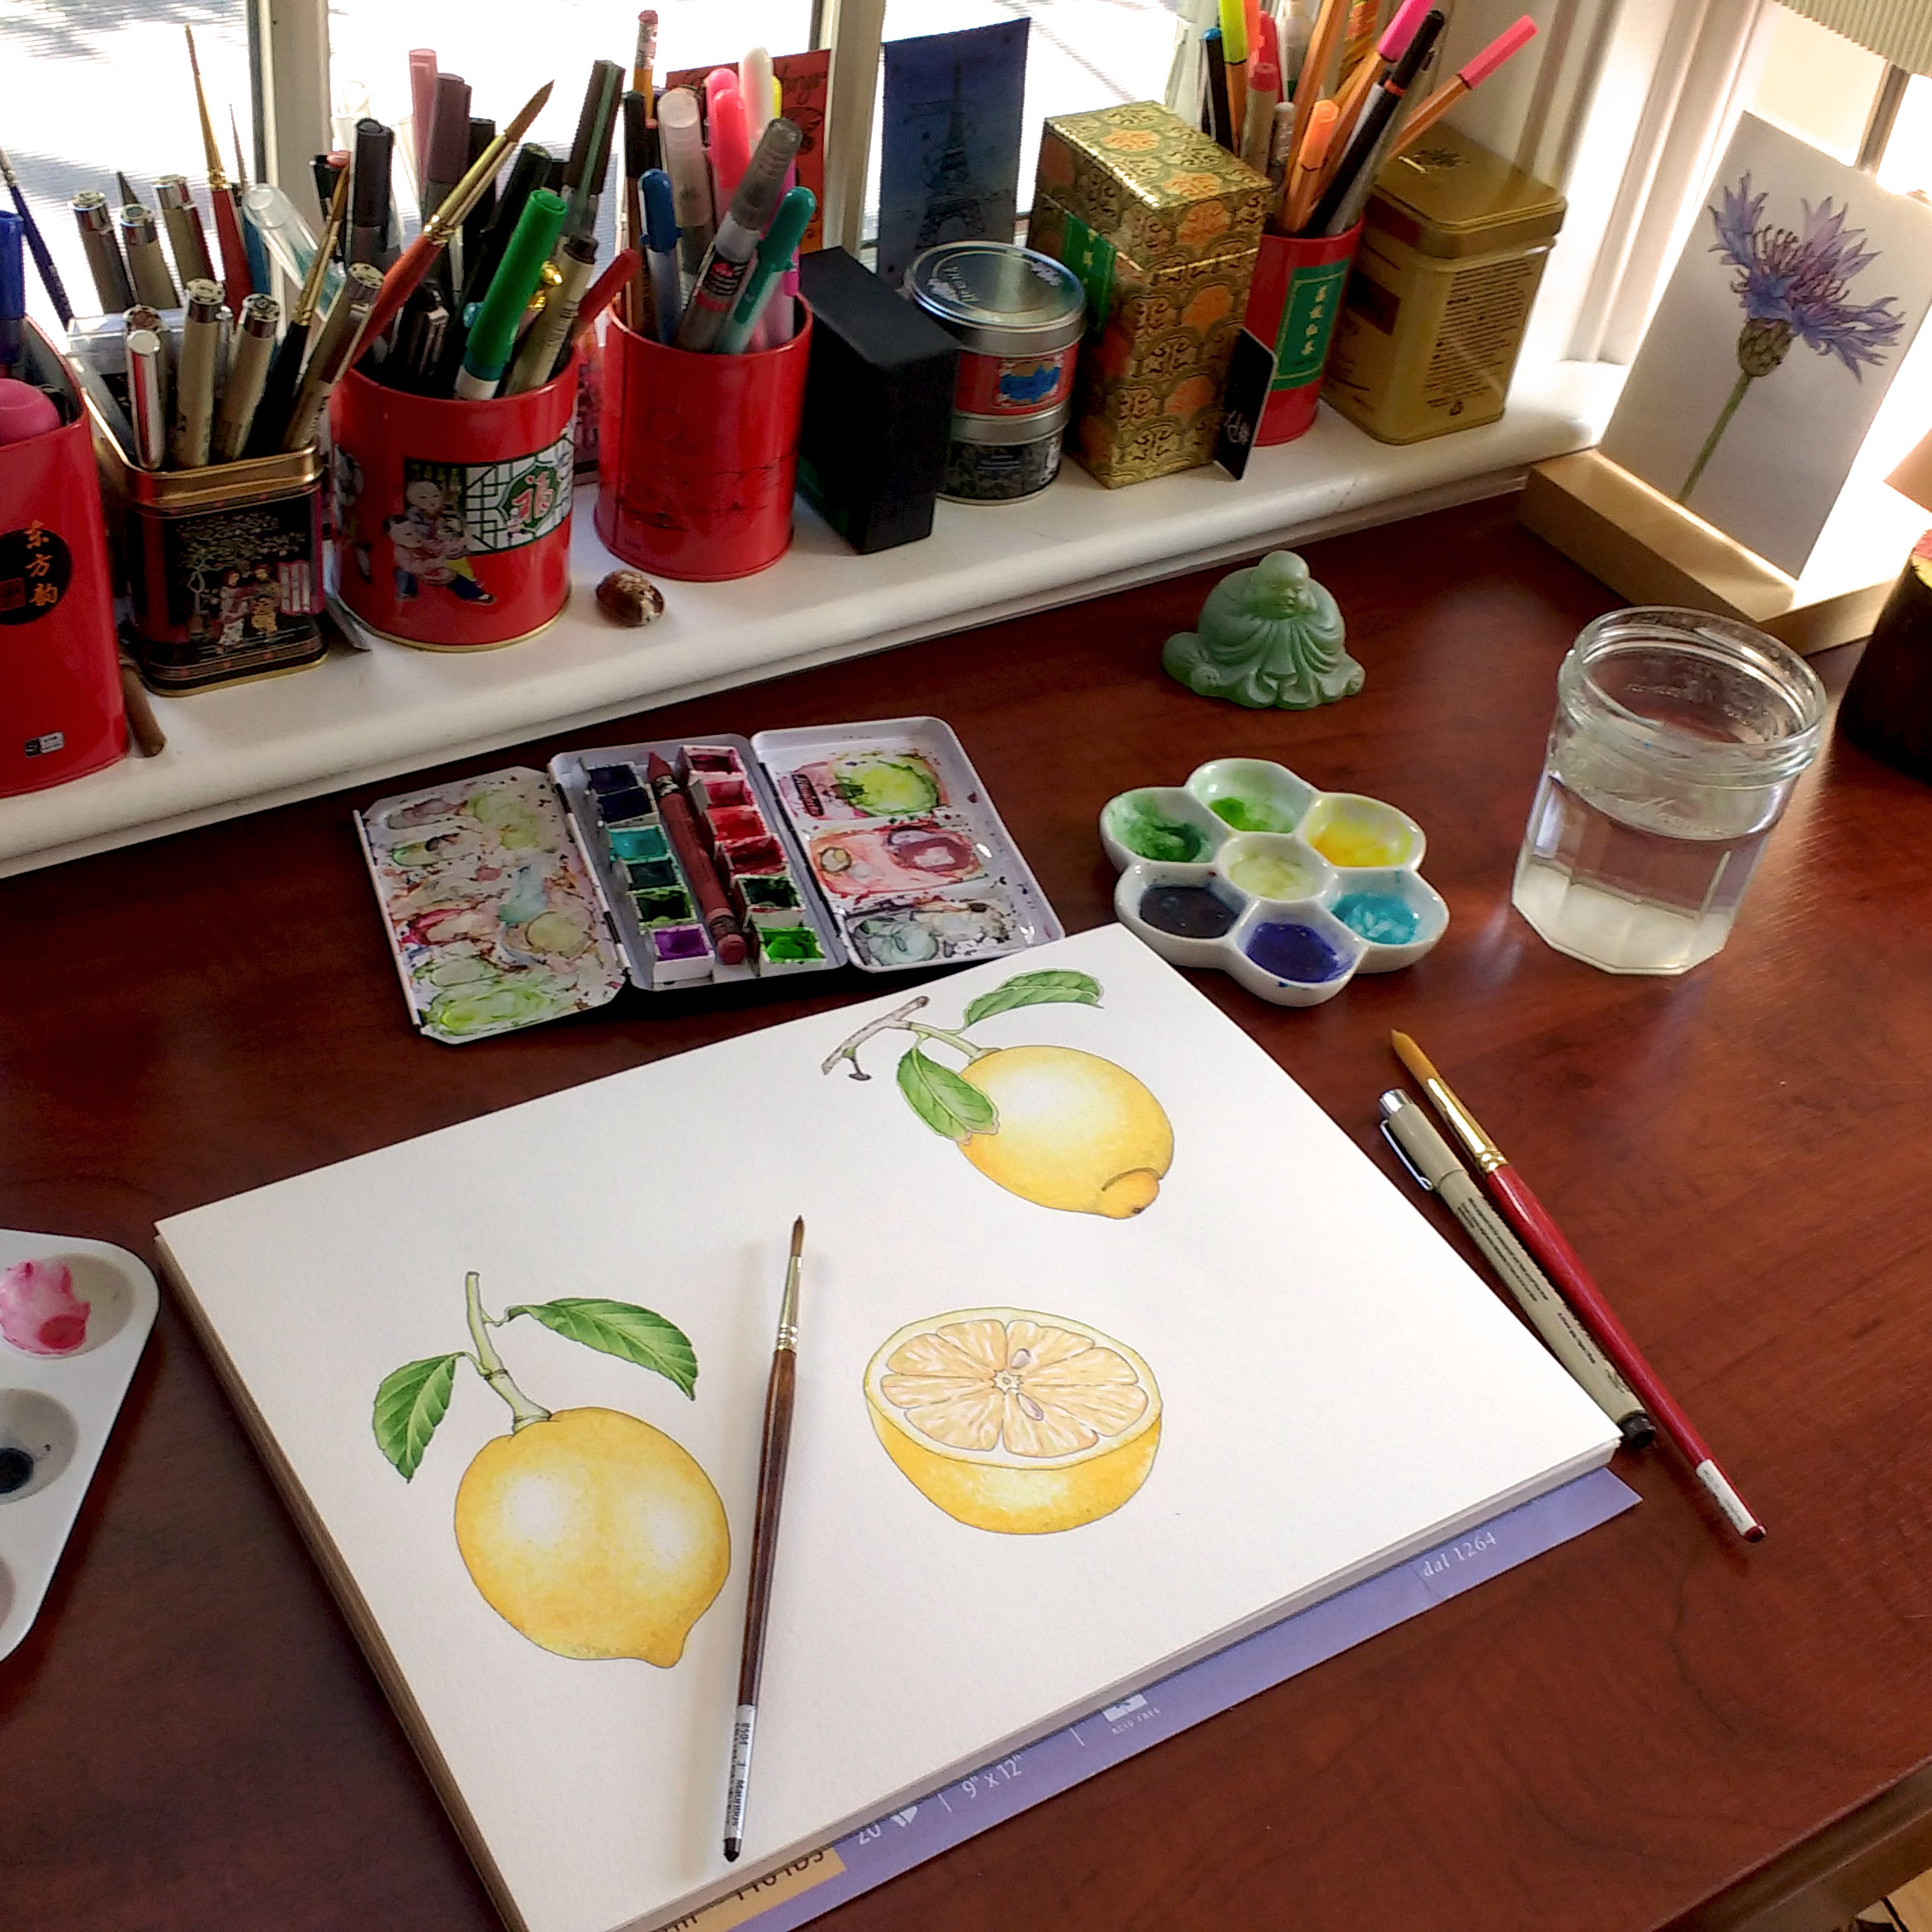 Finished lemon illustrations